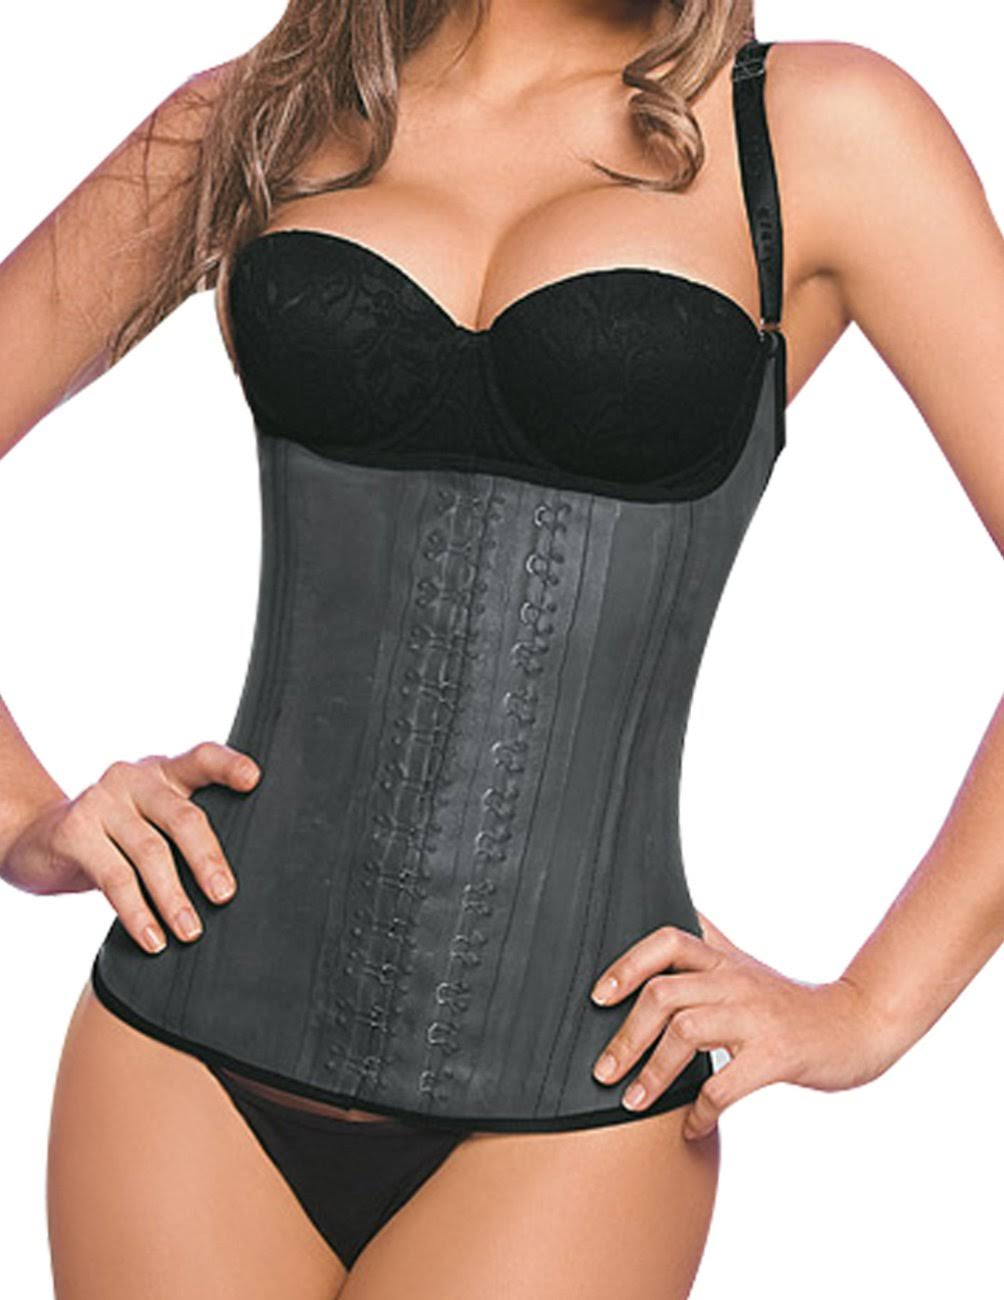 Ann Chery Womens Latex Girdle Body Shaper - Black, Medium